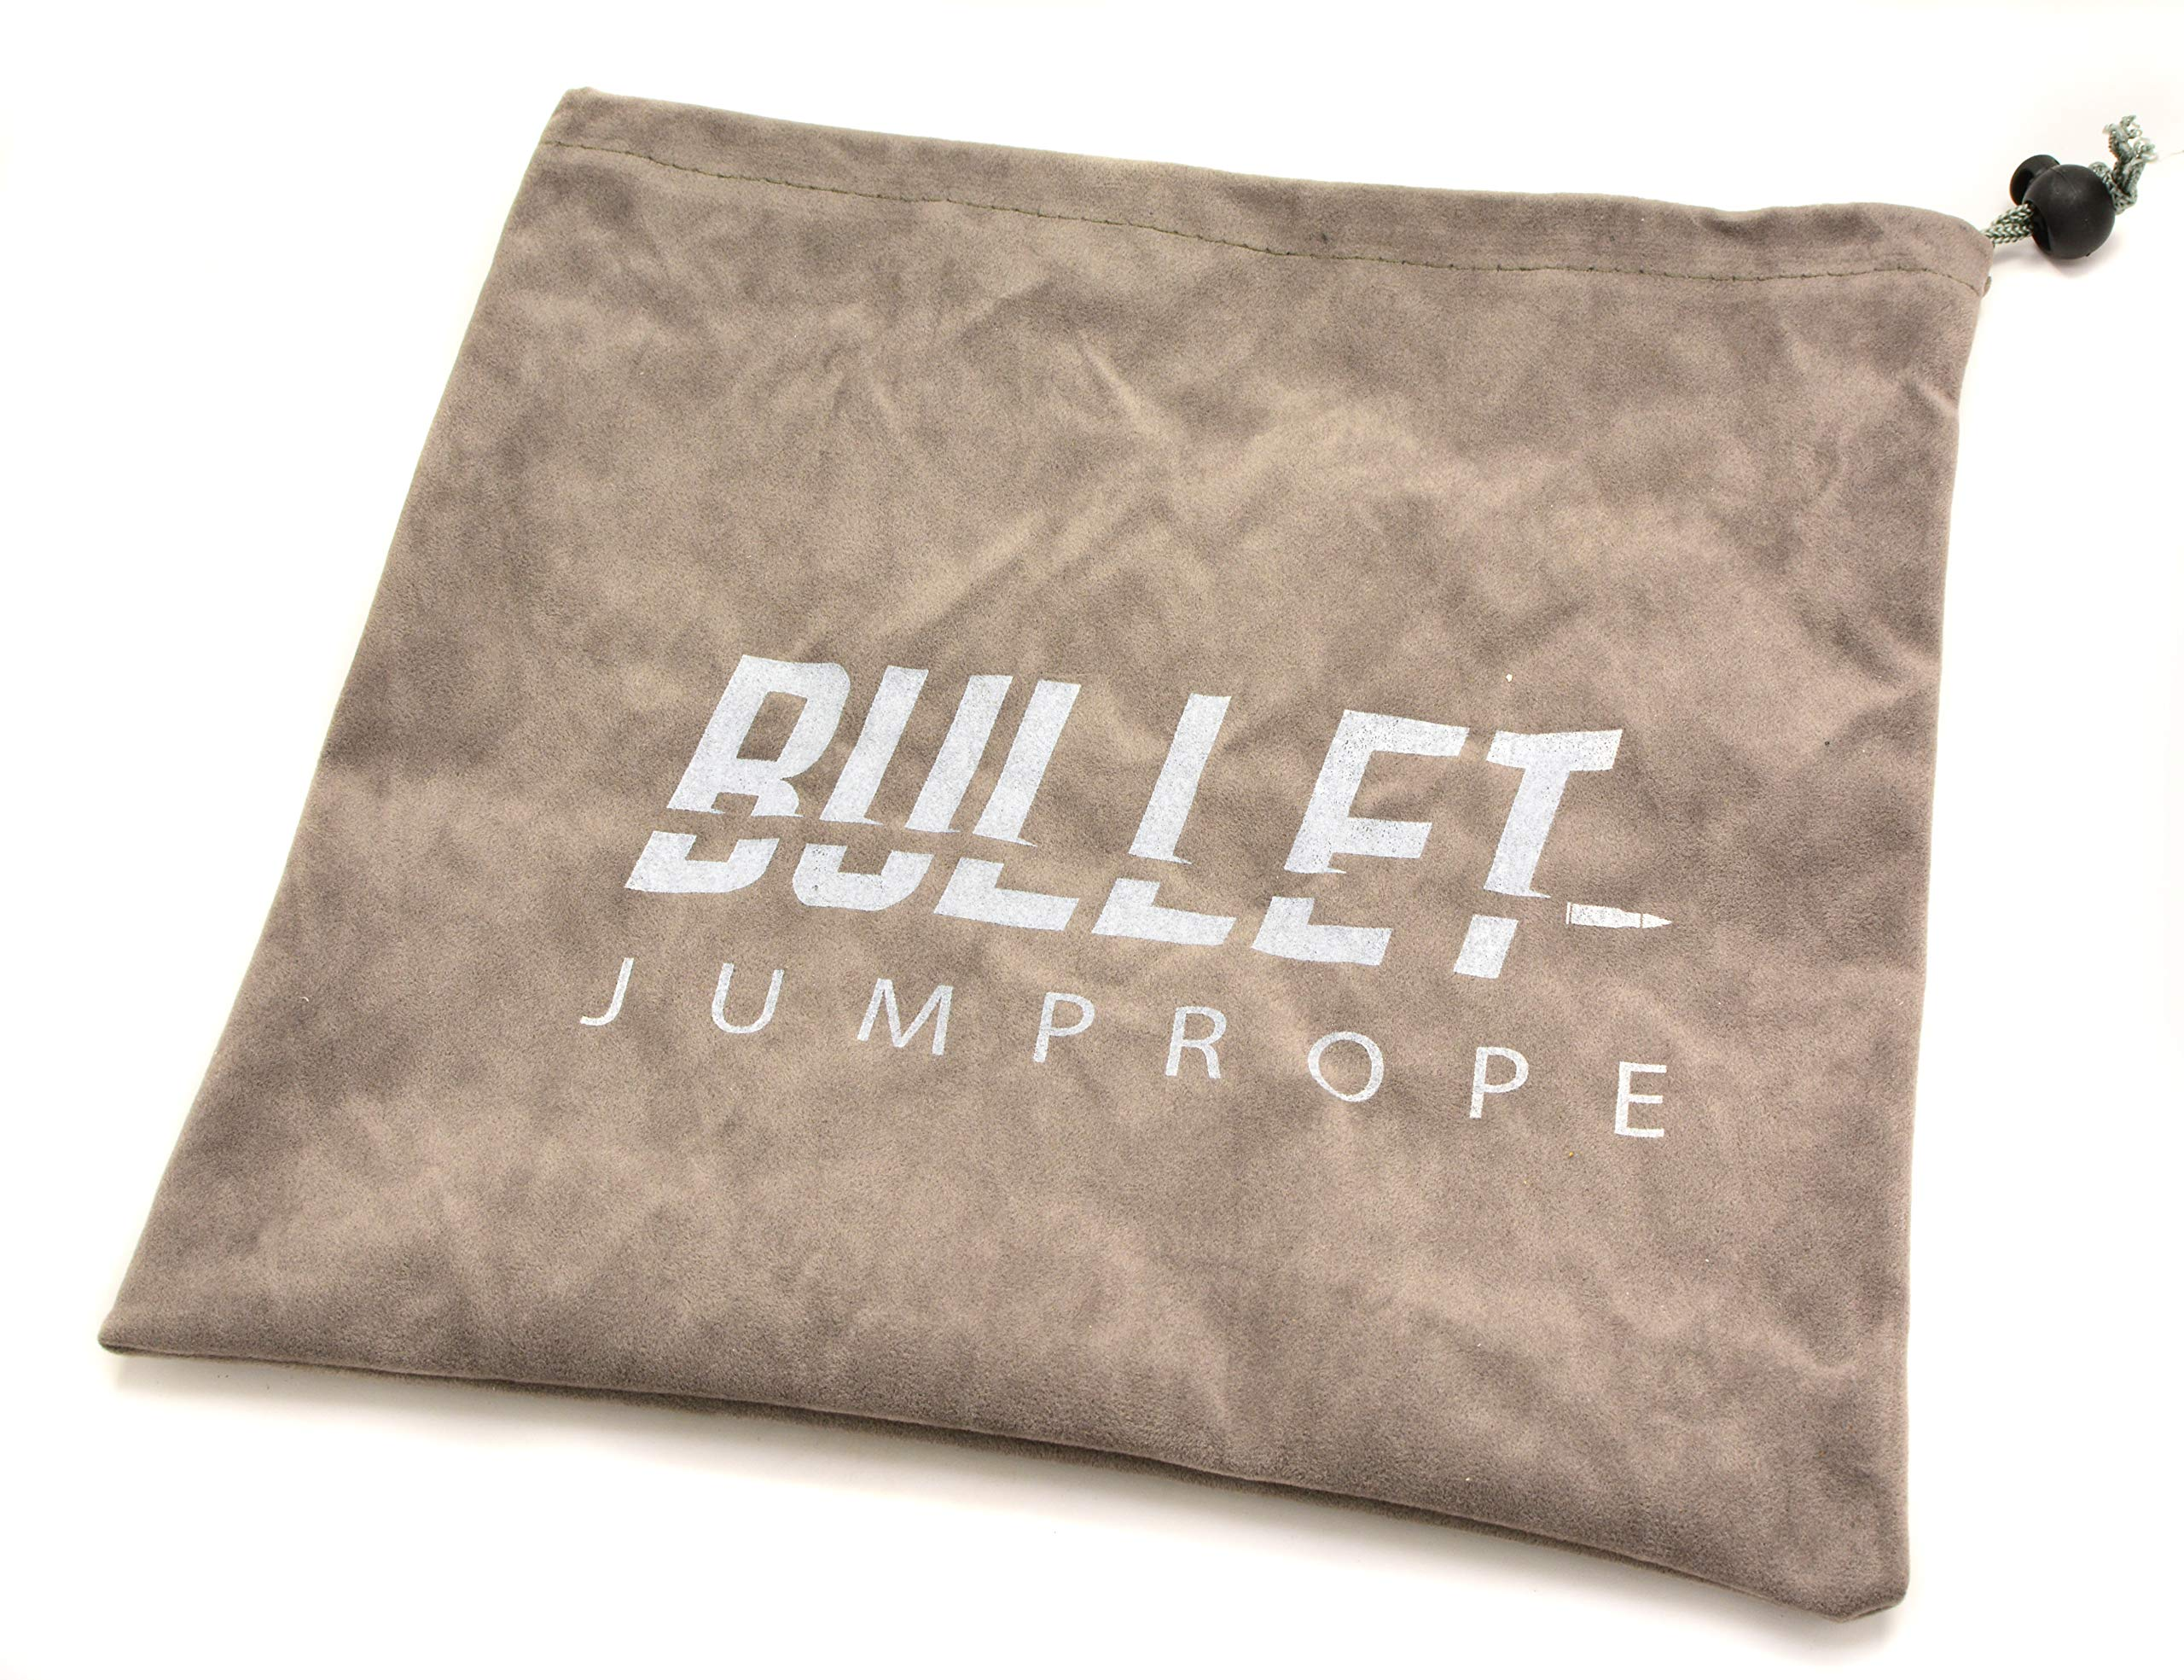 EliteSRS Bullet COMP Jump Rope - Advanced Double Under Speed Rope - Go Faster & Jump More Efficiently by EliteSRS (Image #1)